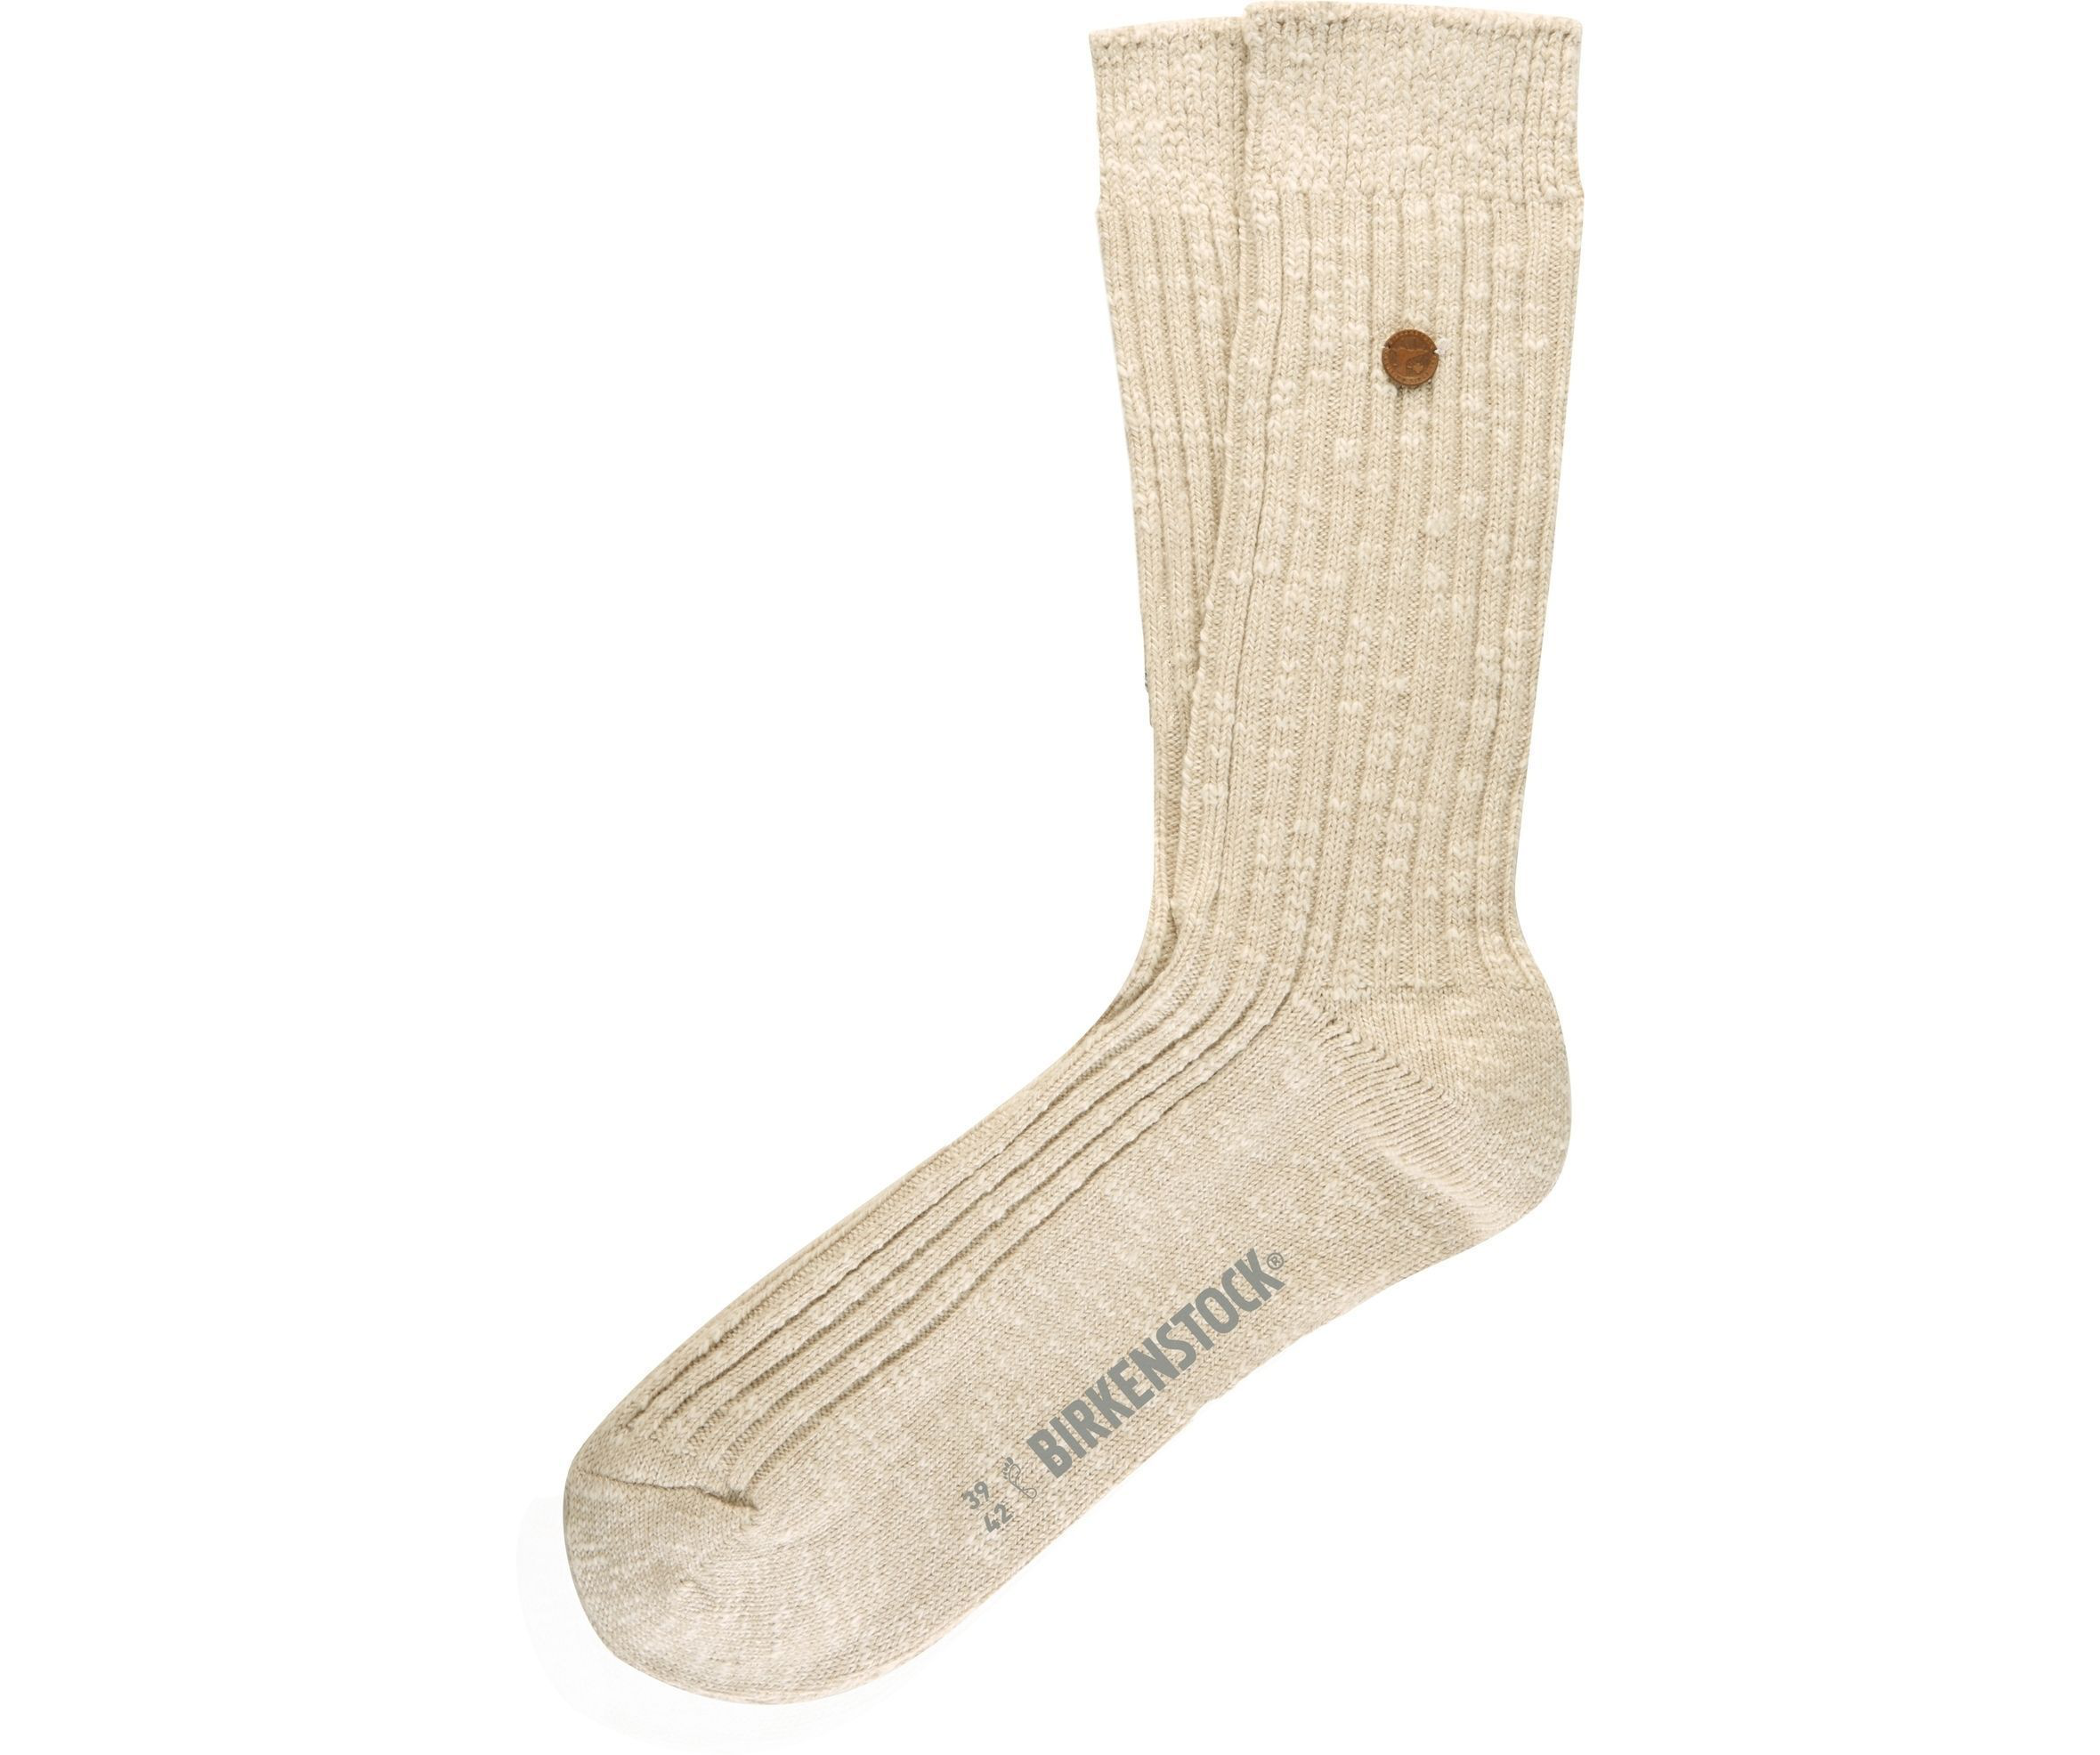 London Sock - Beige Cotton Lycra